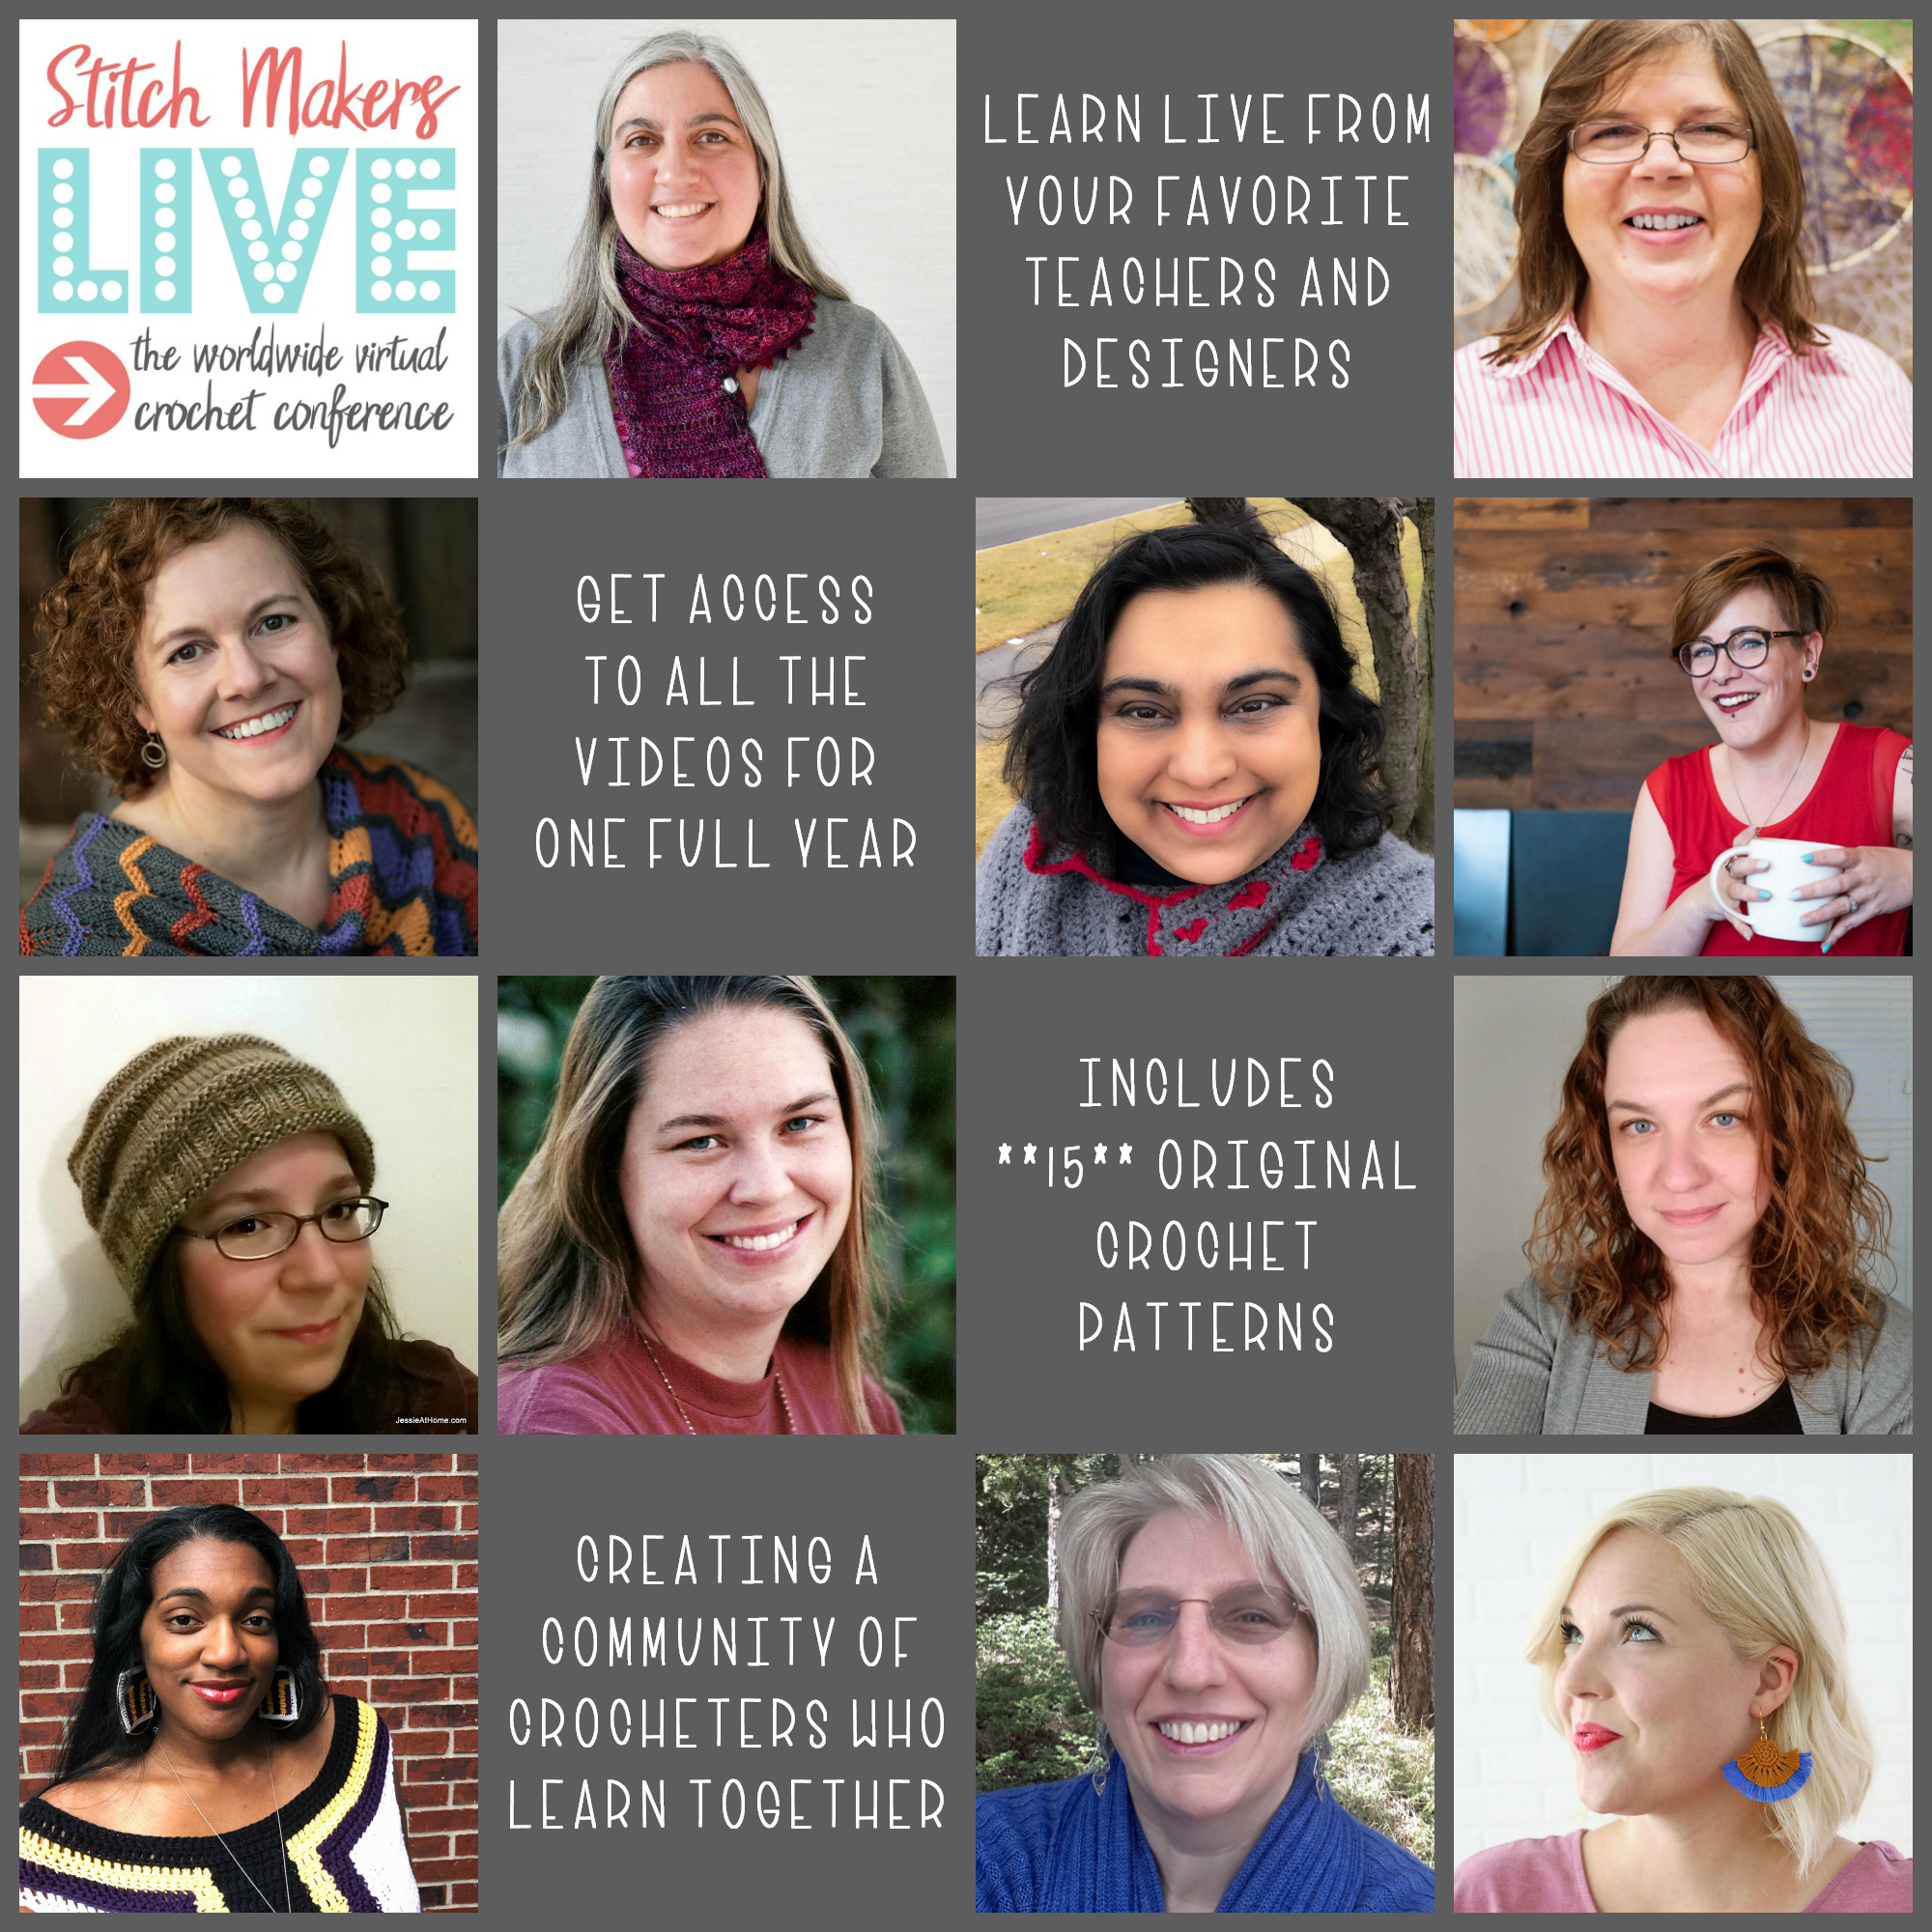 Stitch Makers Live 2019, the world's first online crochet conference where you can learn from your favorite teachers and designers. 15+ original crochet patterns just for you!  Creating a community of crocheters who learn together.